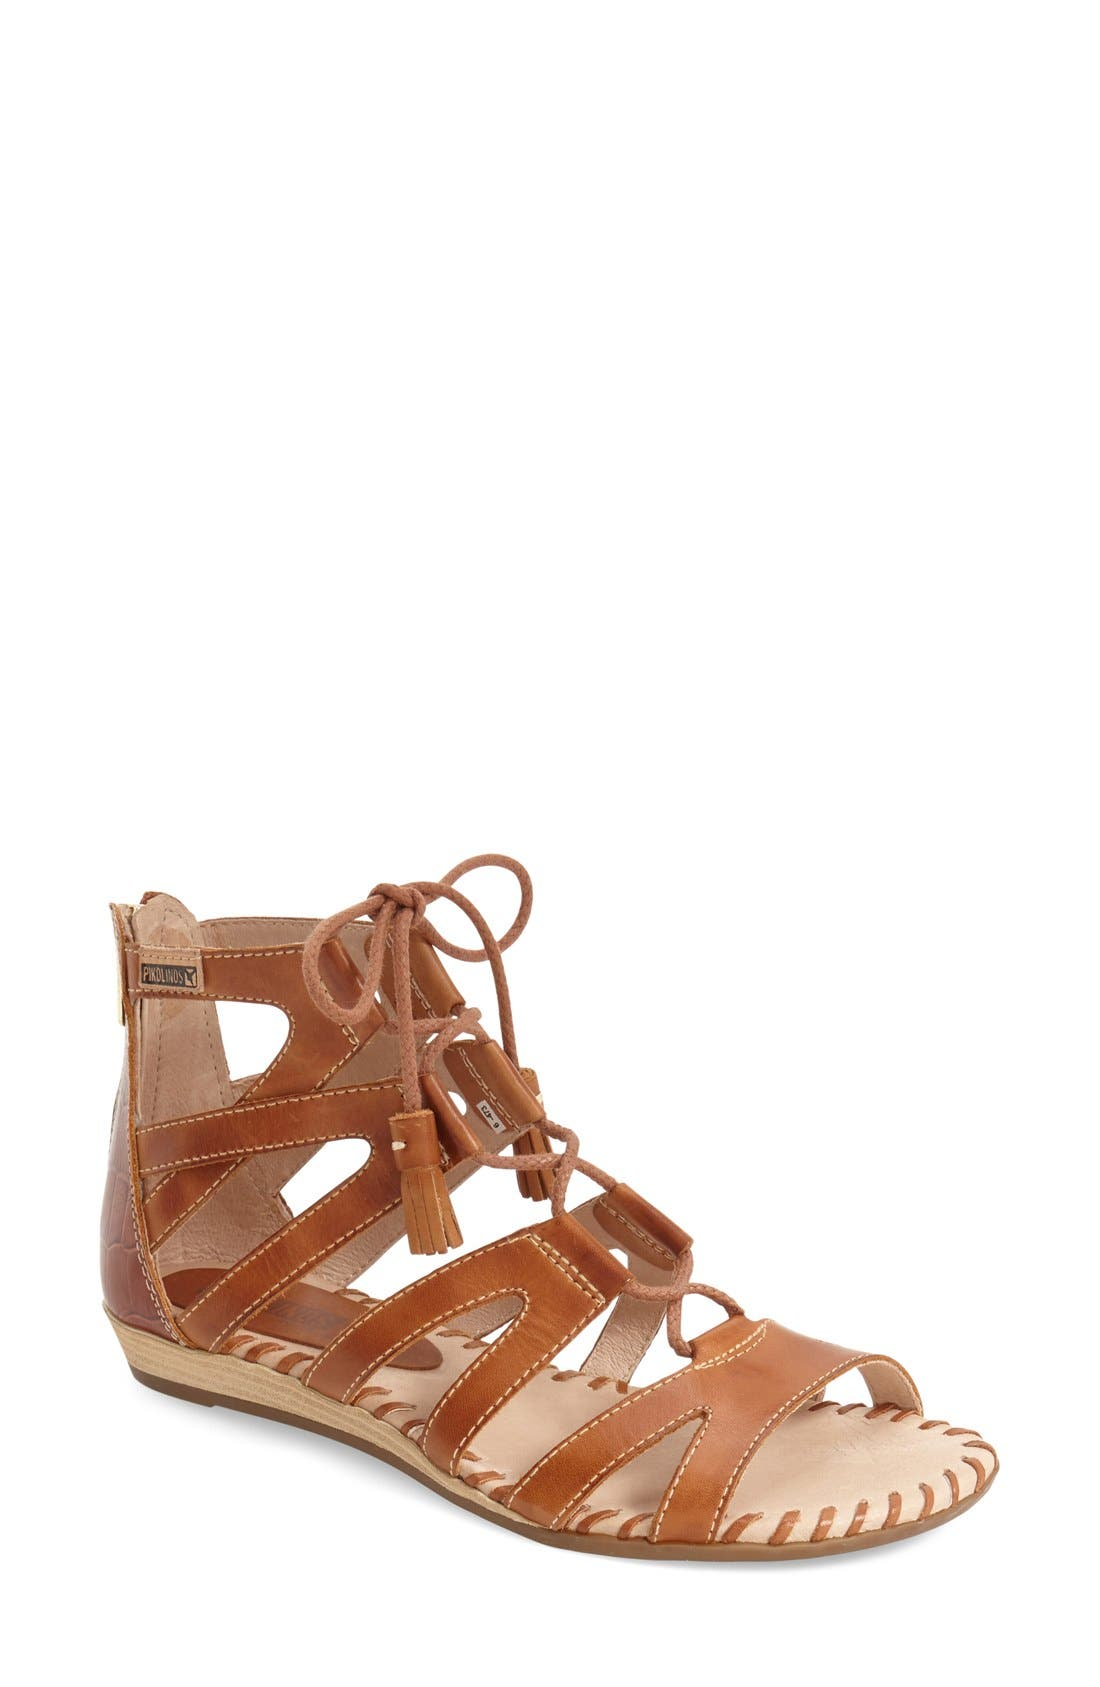 'Alcudia' Lace-Up Sandal,                             Main thumbnail 1, color,                             Brandy/ Brandy Leather